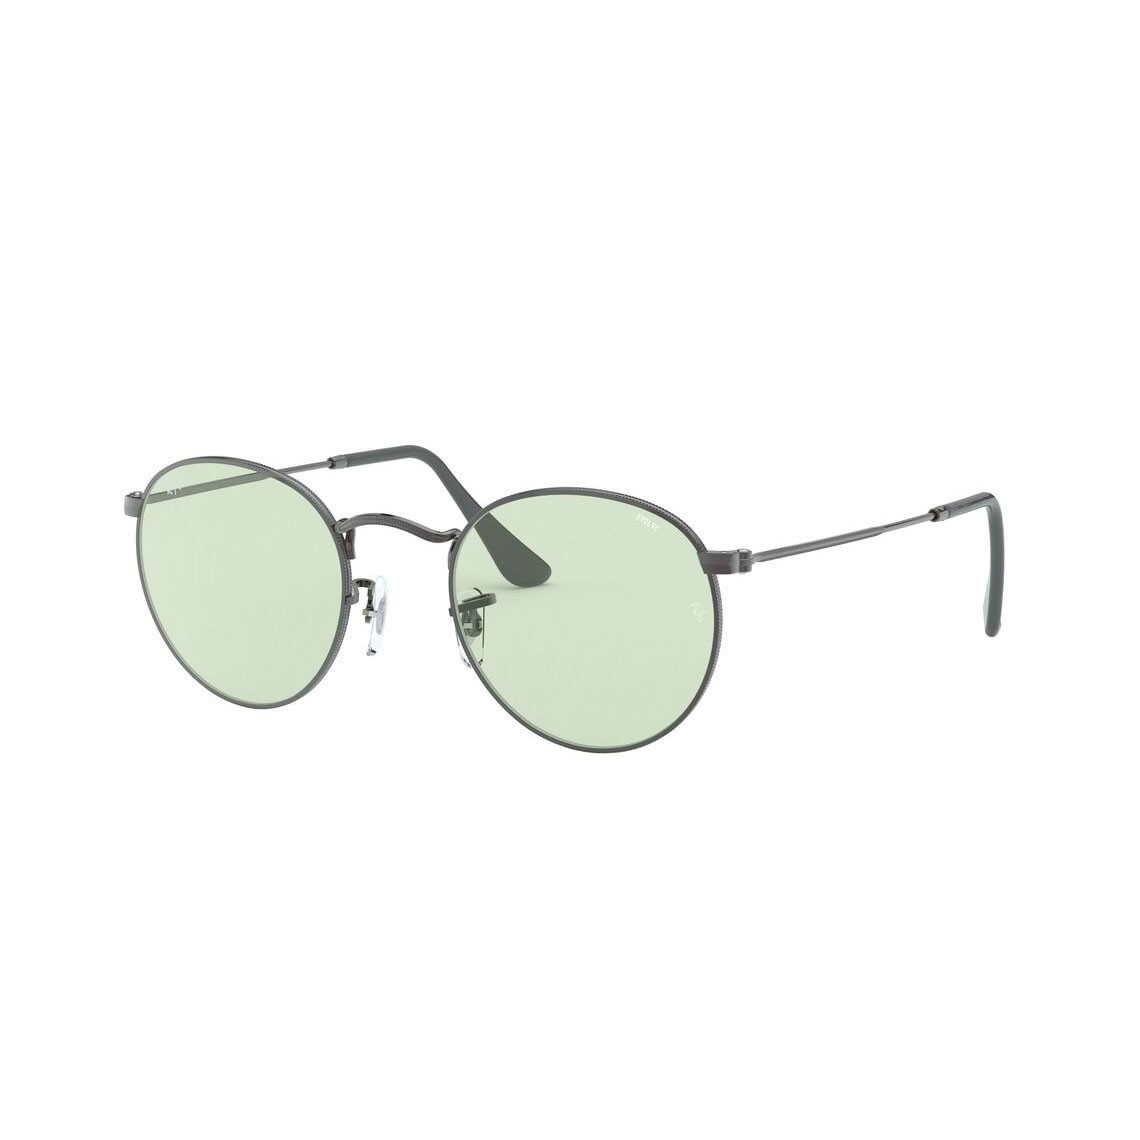 Ray-Ban Round metal RB3447 Solid Evolve 004/T1 5021